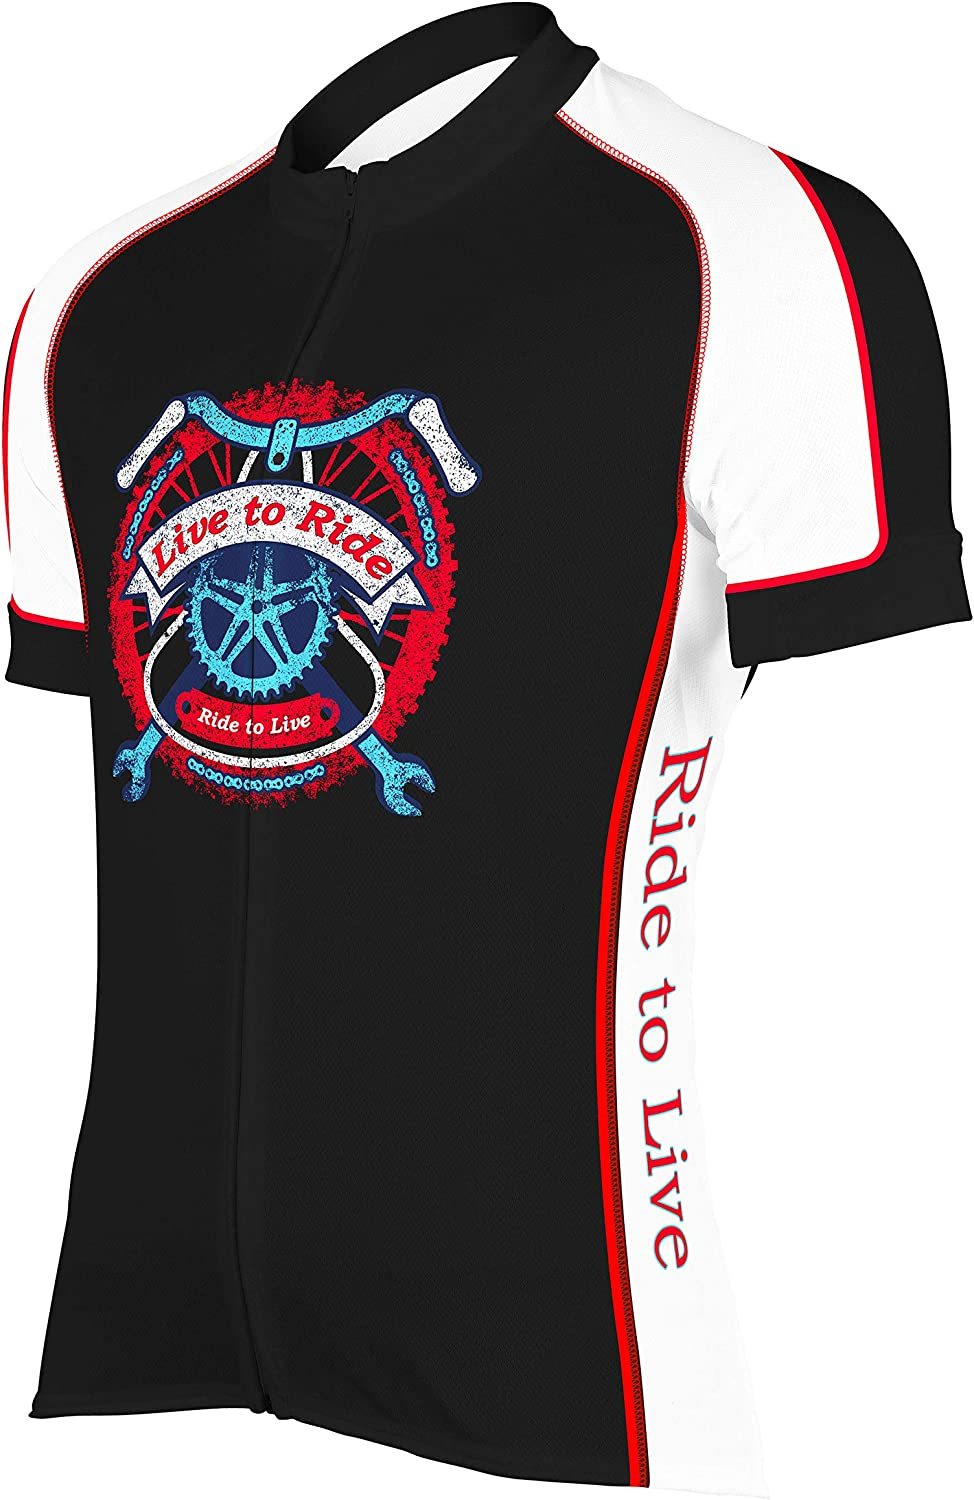 Live to Ride Men's Cycling Short Sleeve Bike Jersey